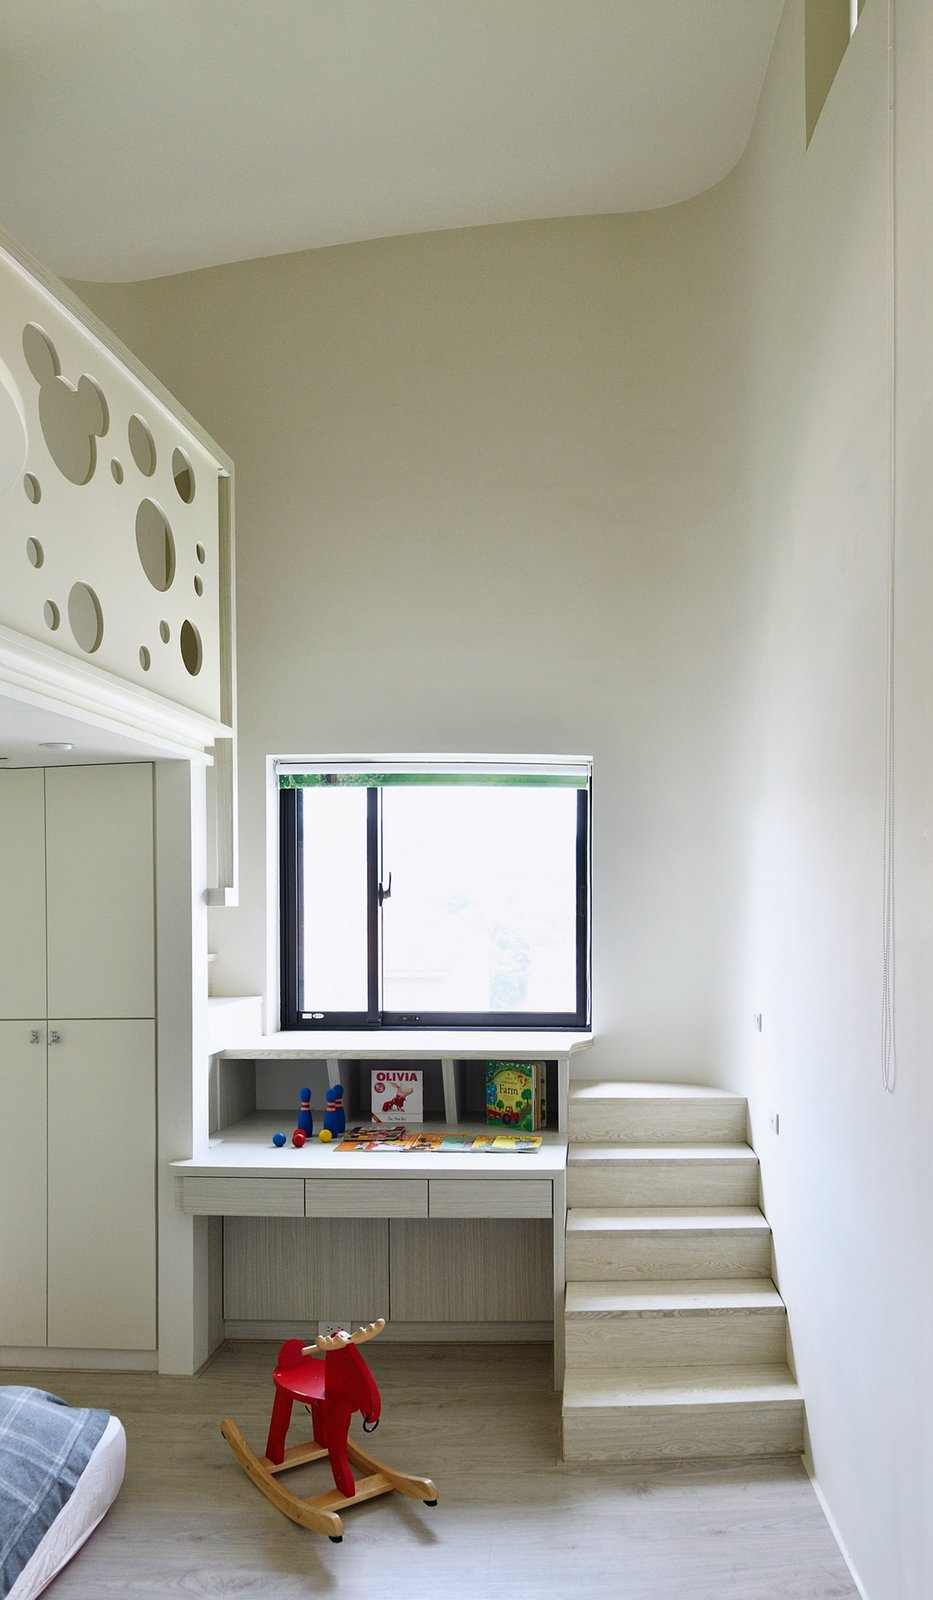 Kids Room, Light Hardwood Floor, Bedroom Room Type, Neutral Gender, Toddler Age, Storage, and Bed  Photos from A Serpentine Wall in This Taiwanese Home Divides Public and Private Space